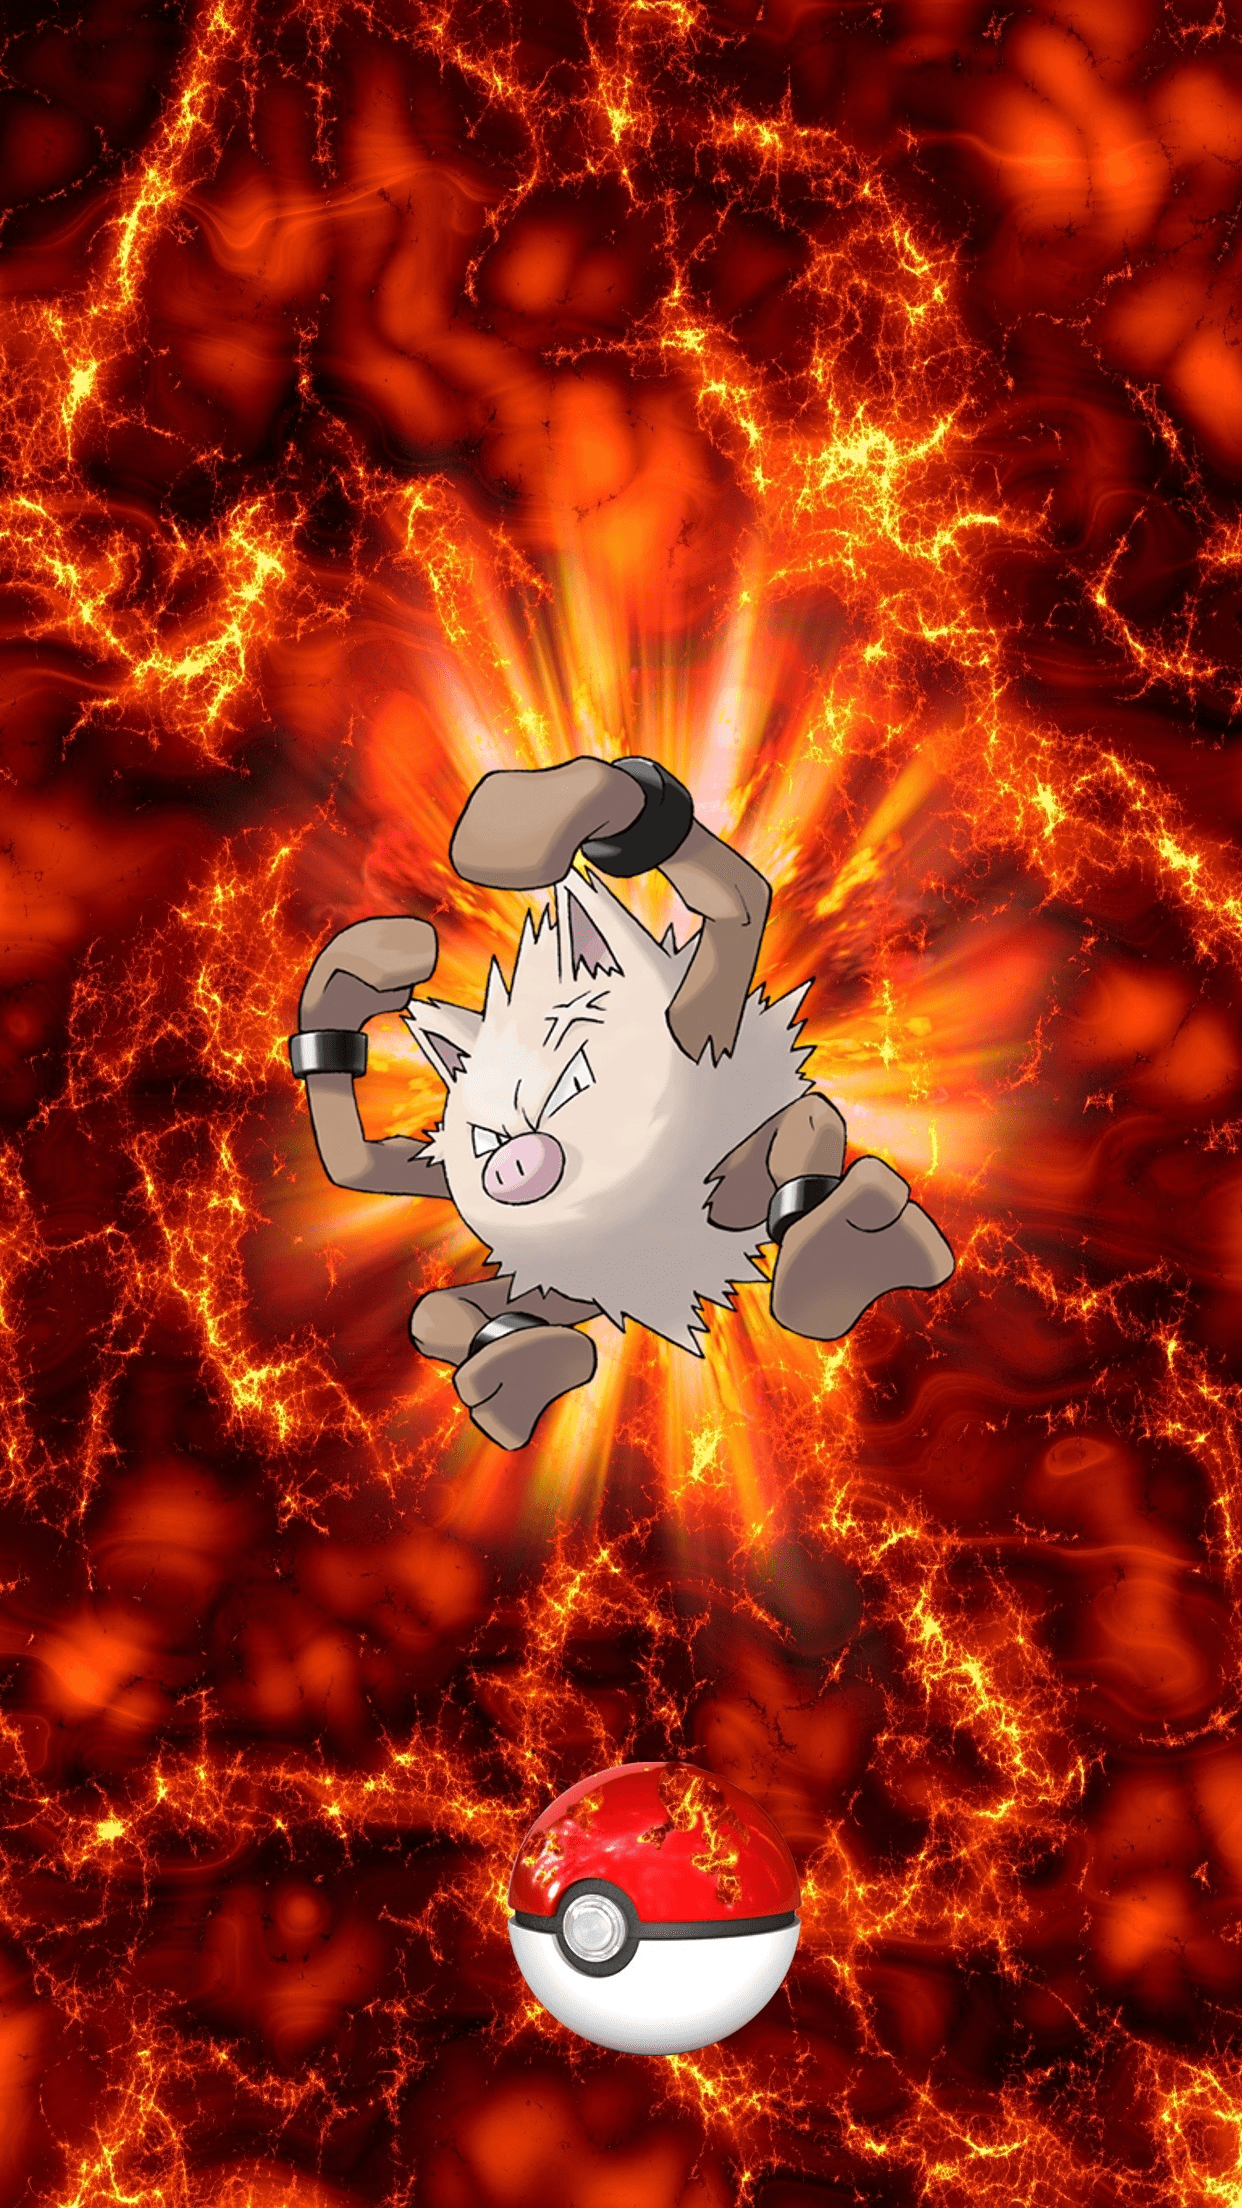 057 Fire Pokeball Primeape Okorizaru Mankey